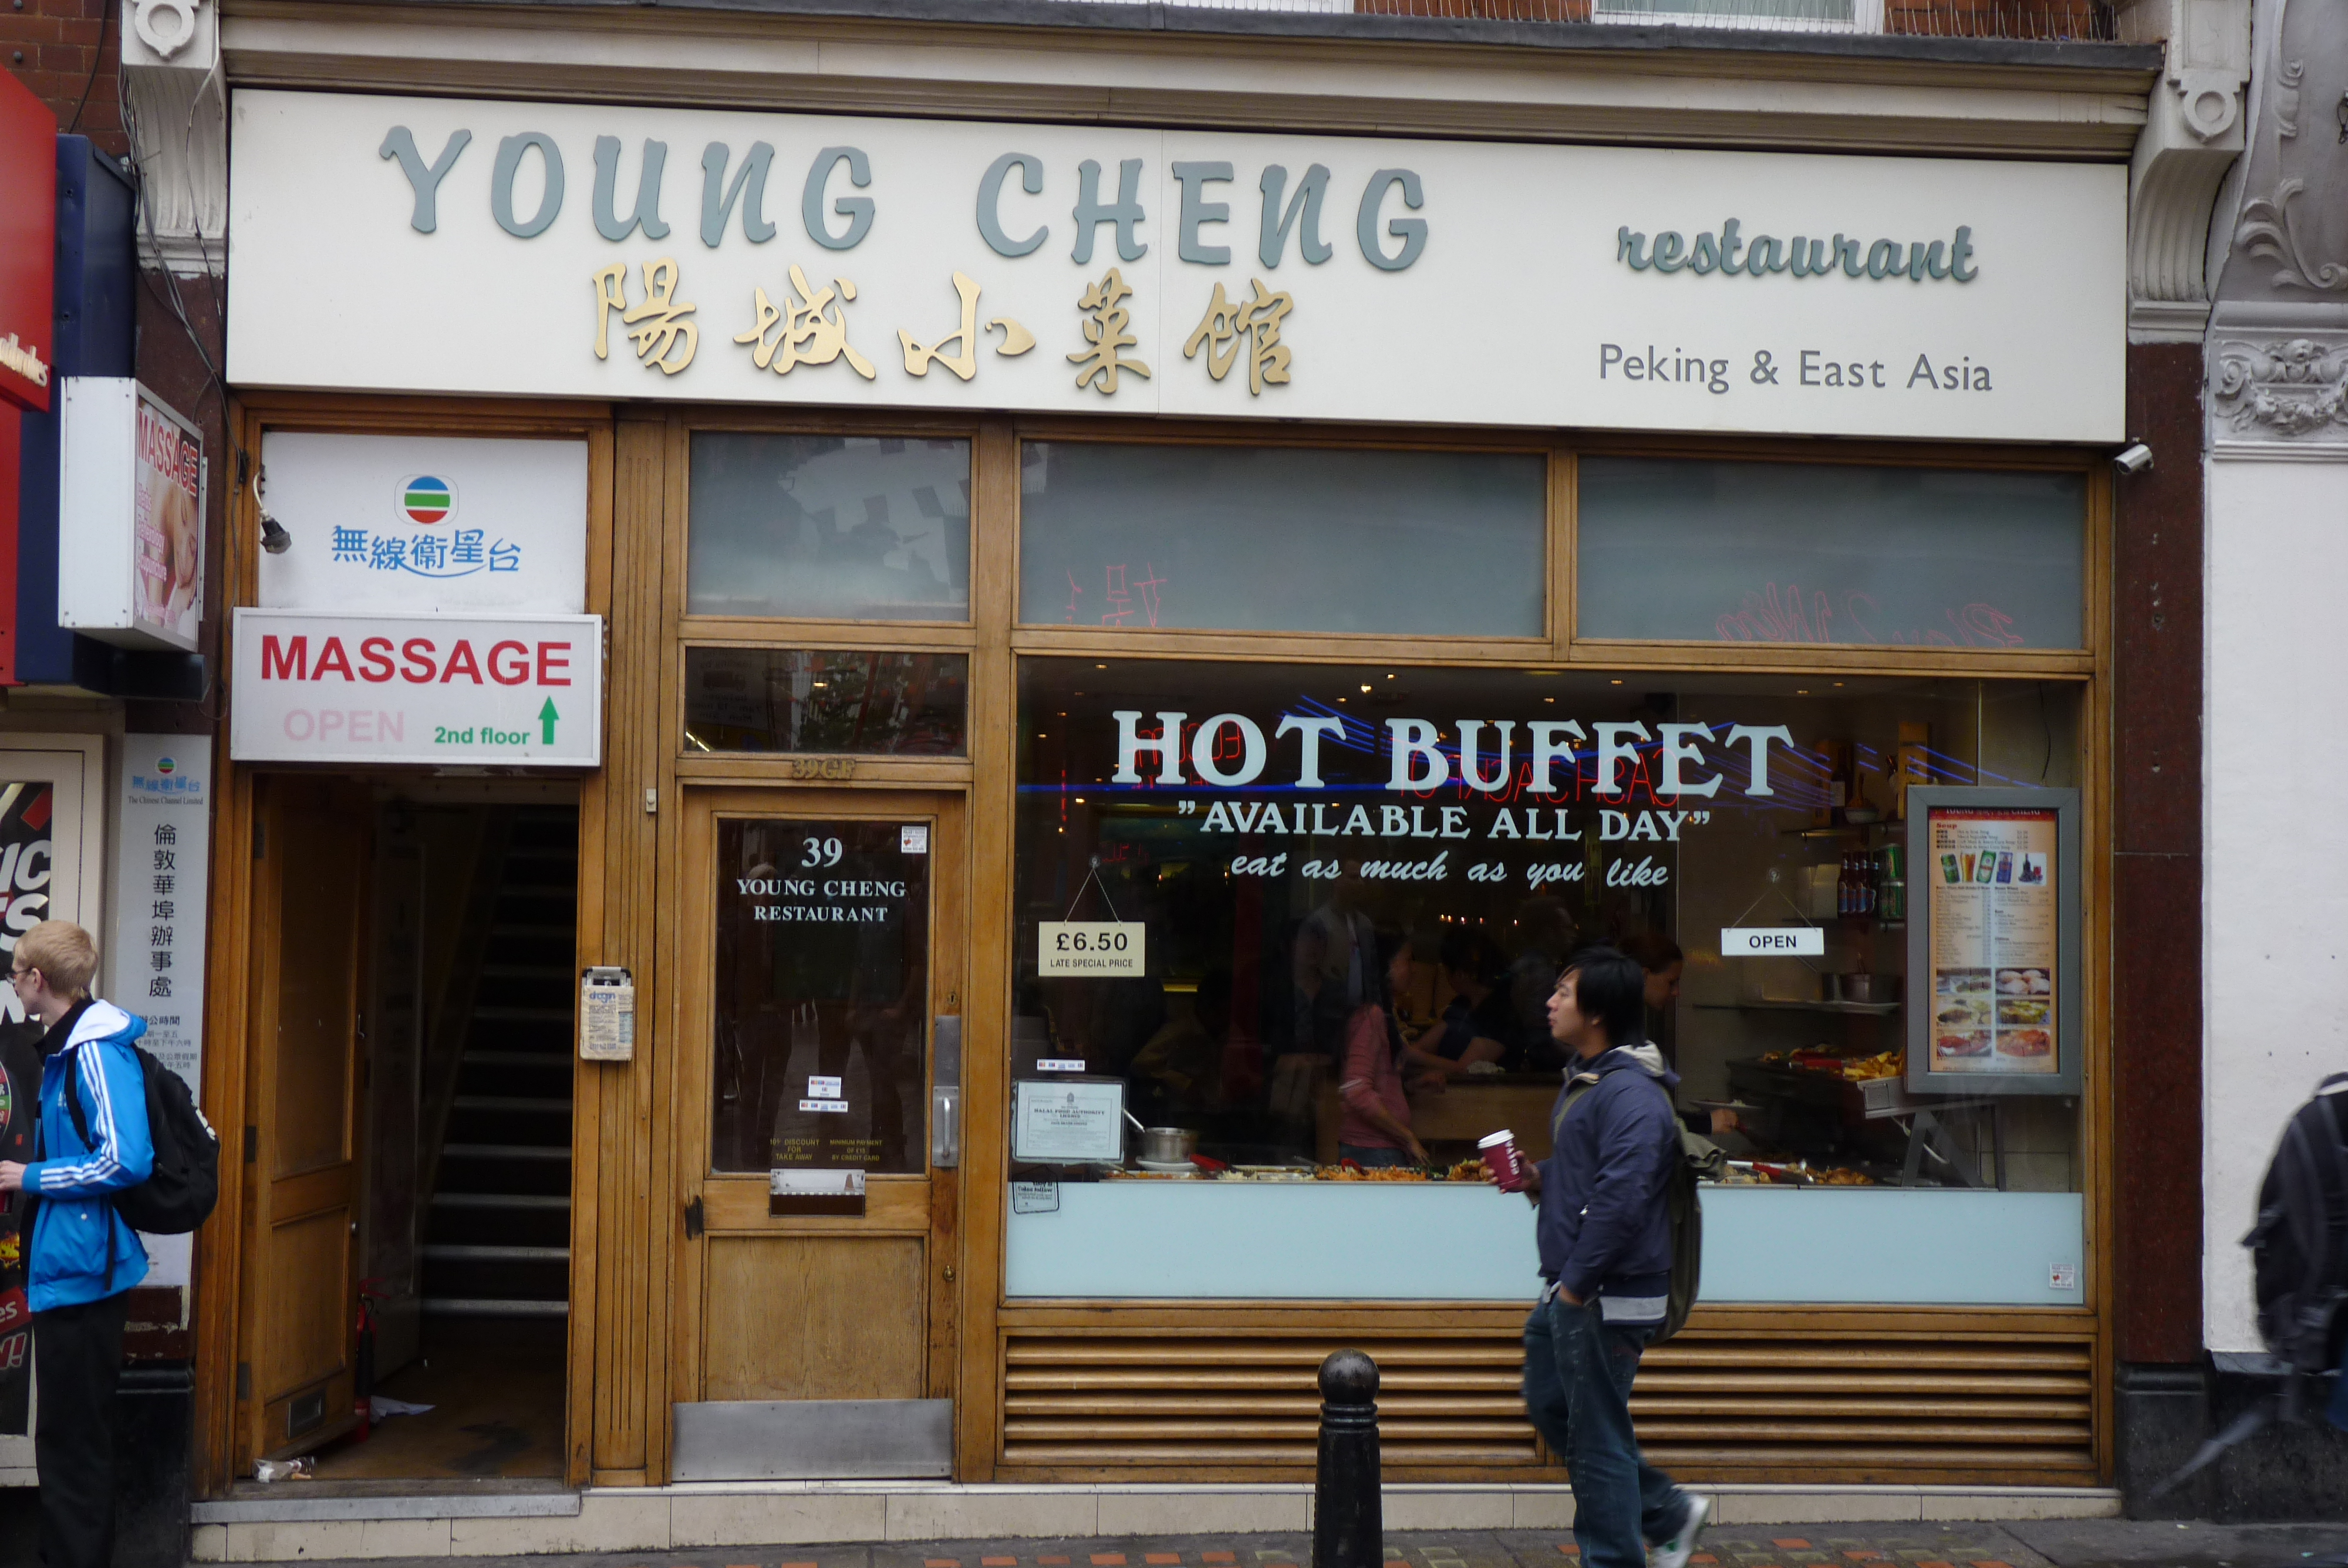 Miraculous Young Cheng Chinese Restaurant London Download Free Architecture Designs Itiscsunscenecom